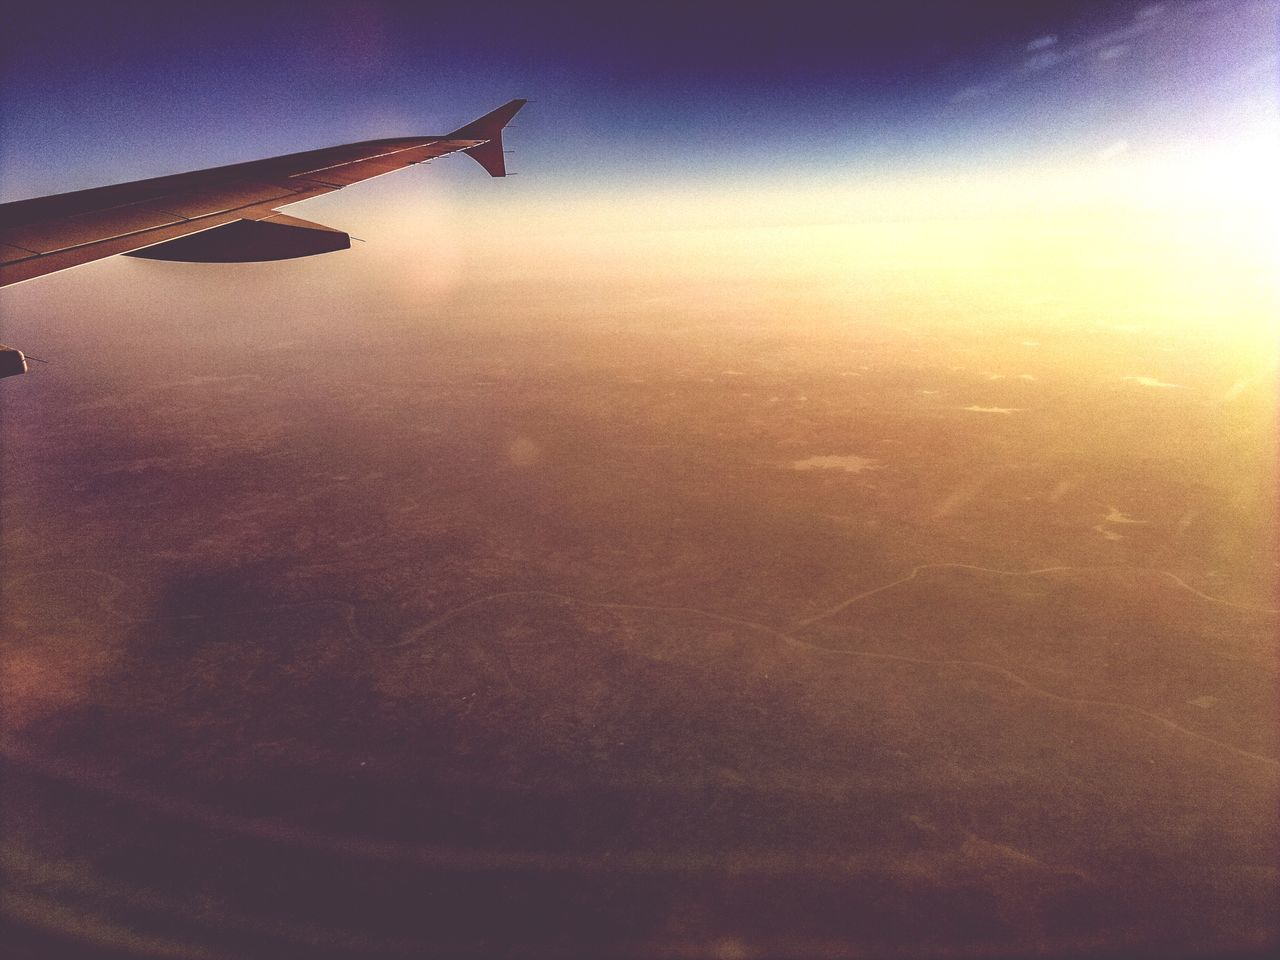 Airplane Transportation Aerial View Flying Airplane Wing Mode Of Transport Sky Journey Aircraft Wing Aeroplane Aircraft Nature No People Landscape Air Vehicle Sunset Beauty In Nature Cloud - Sky Outdoors Close-up